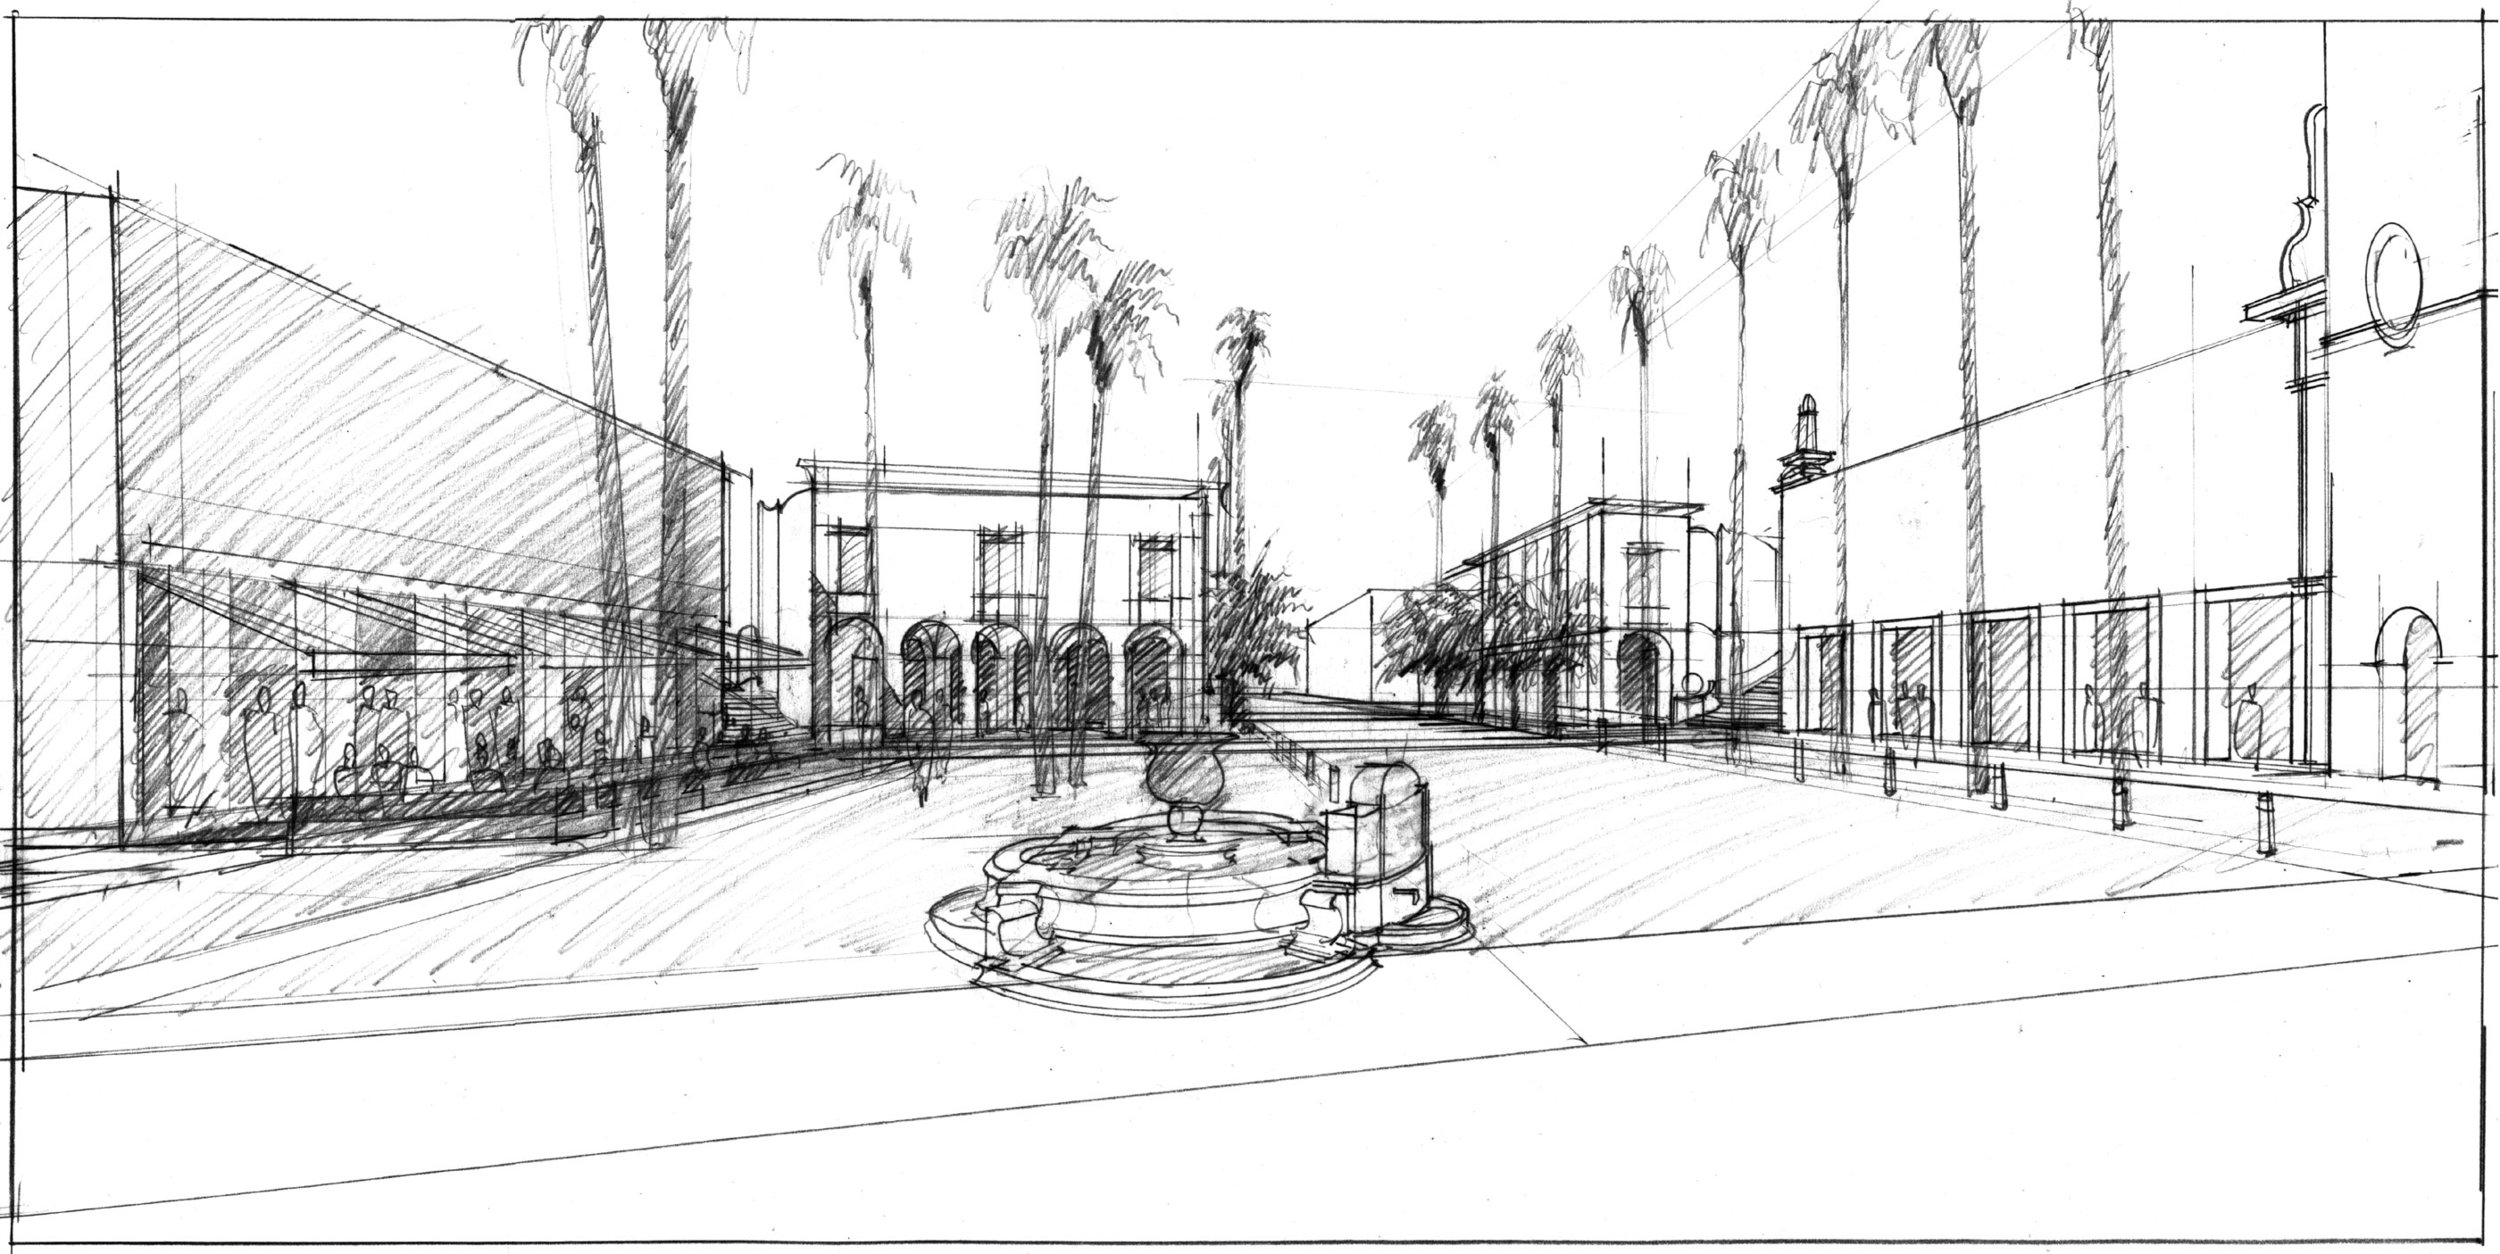 Huntington Park perspective sketch